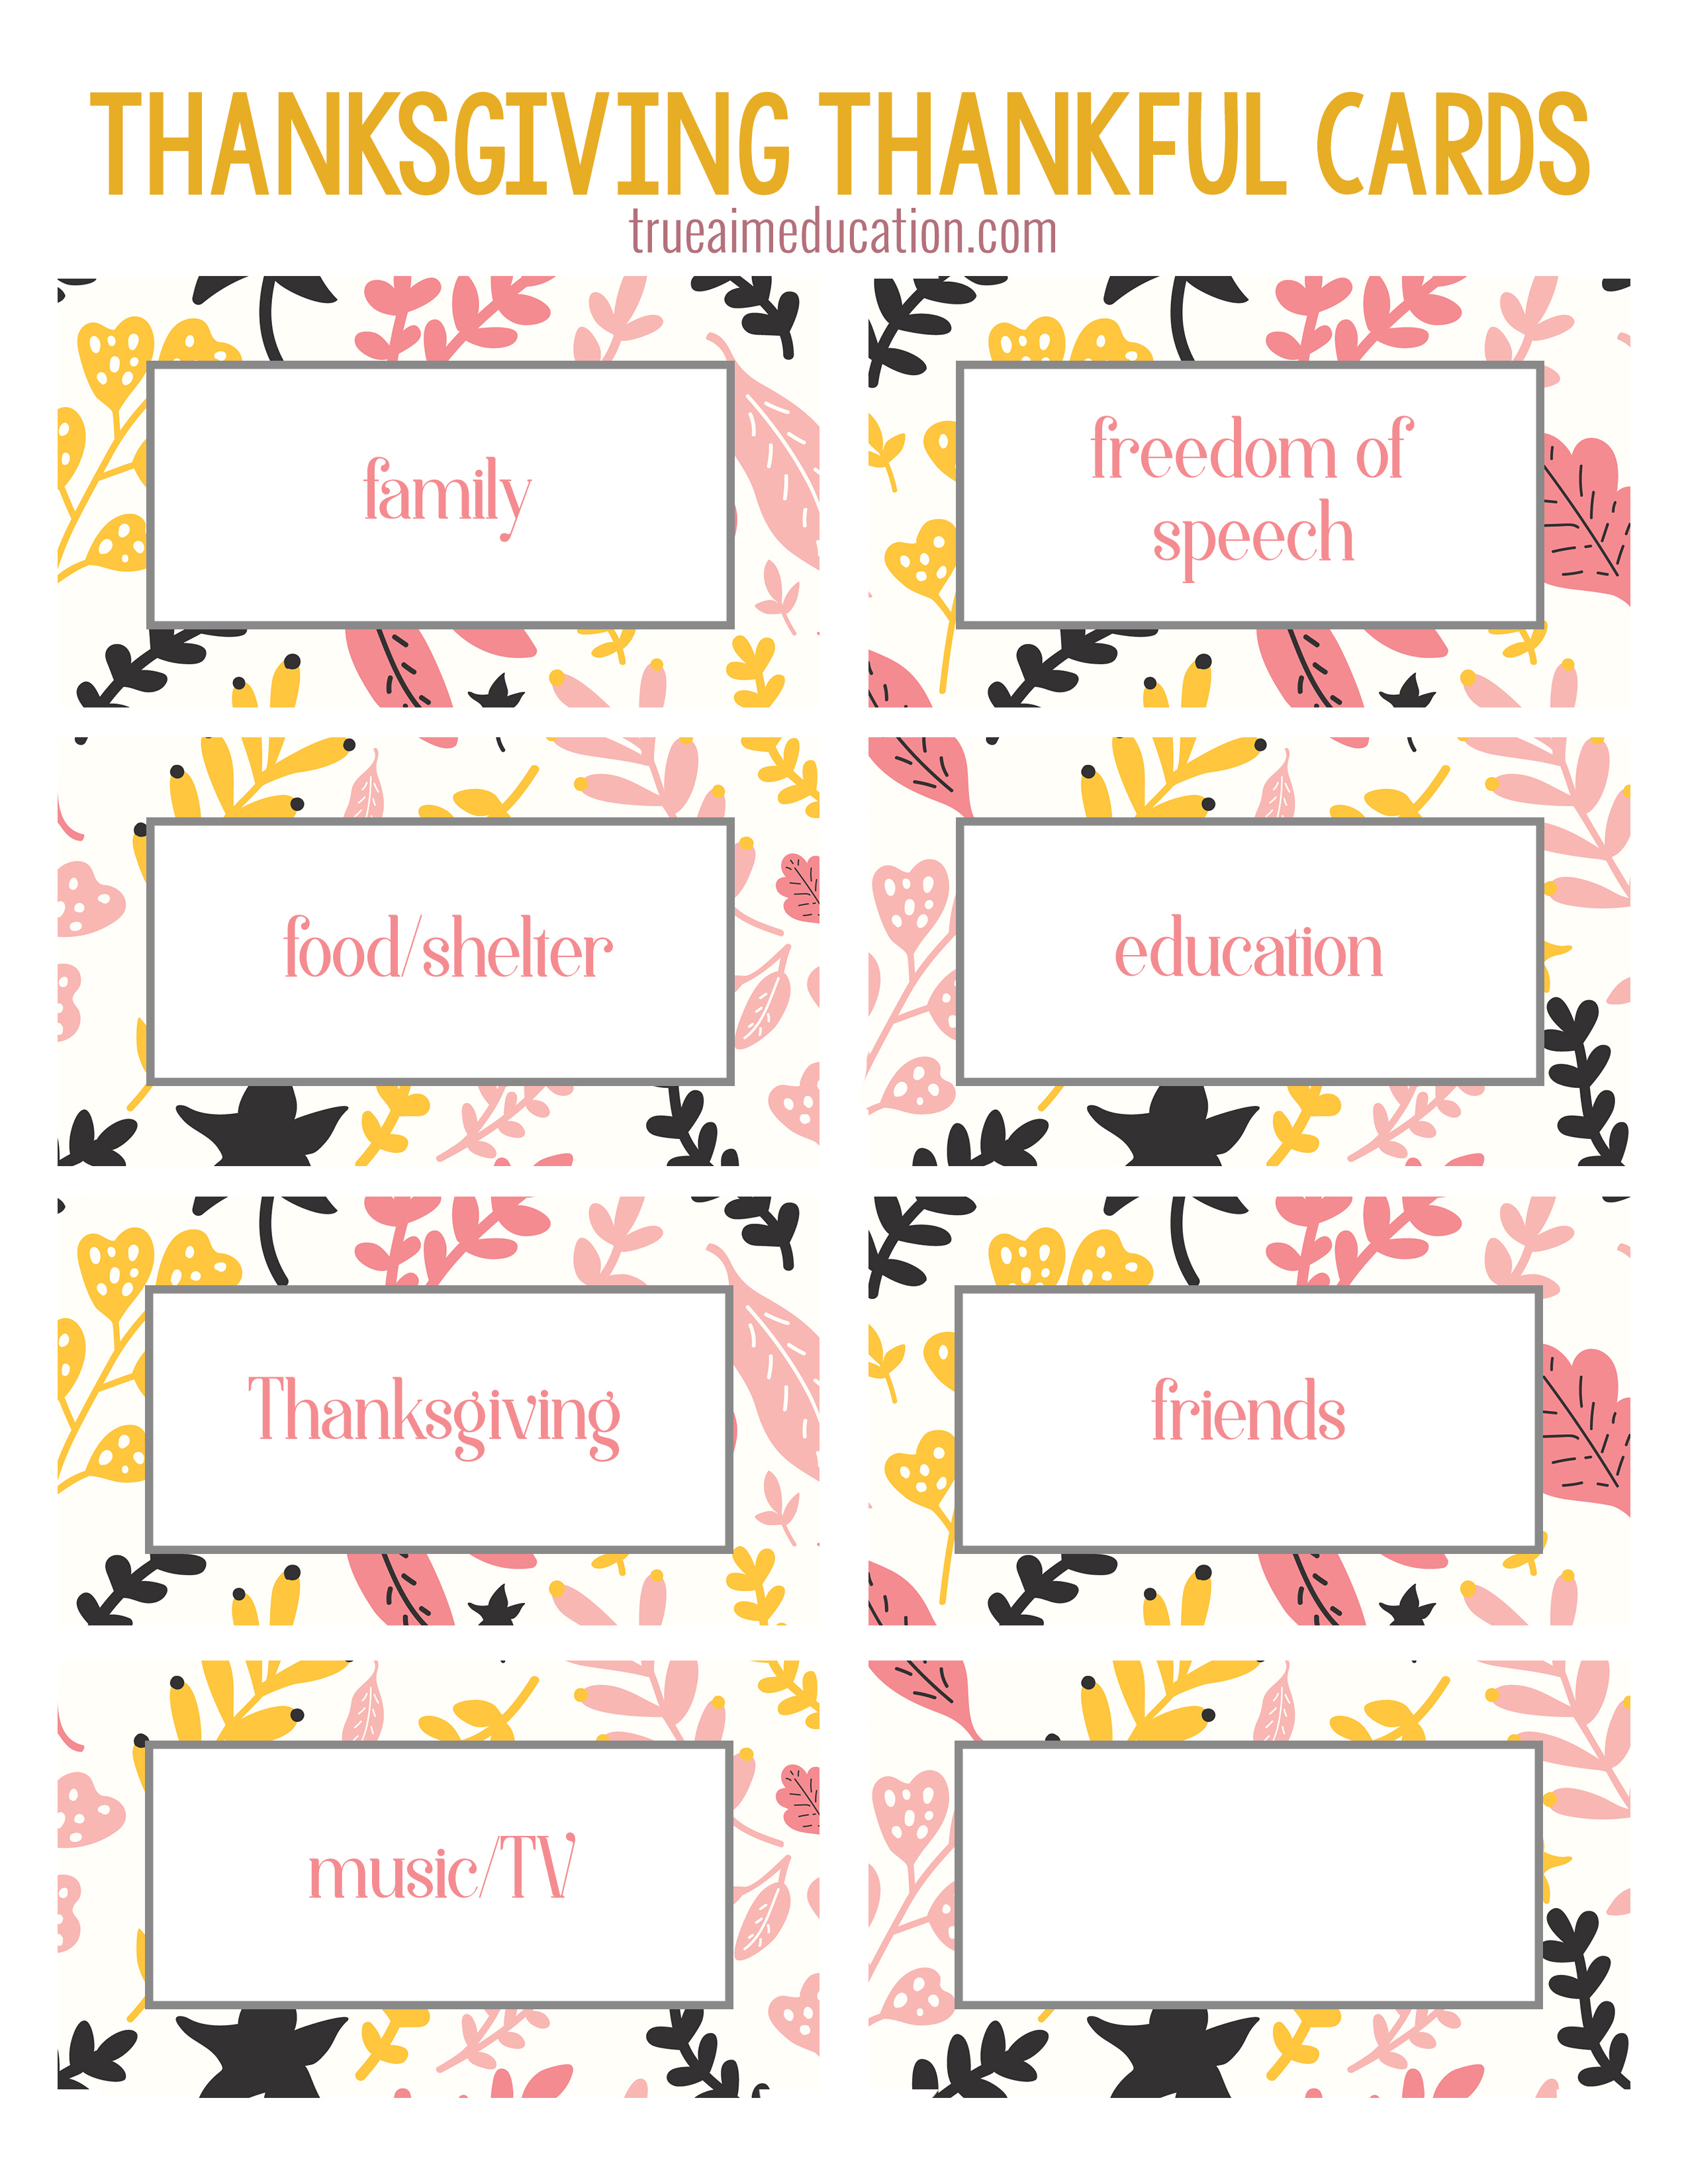 Thanksgiving Thankfulness With Free Printable Cards - Free Printable Picture Cards